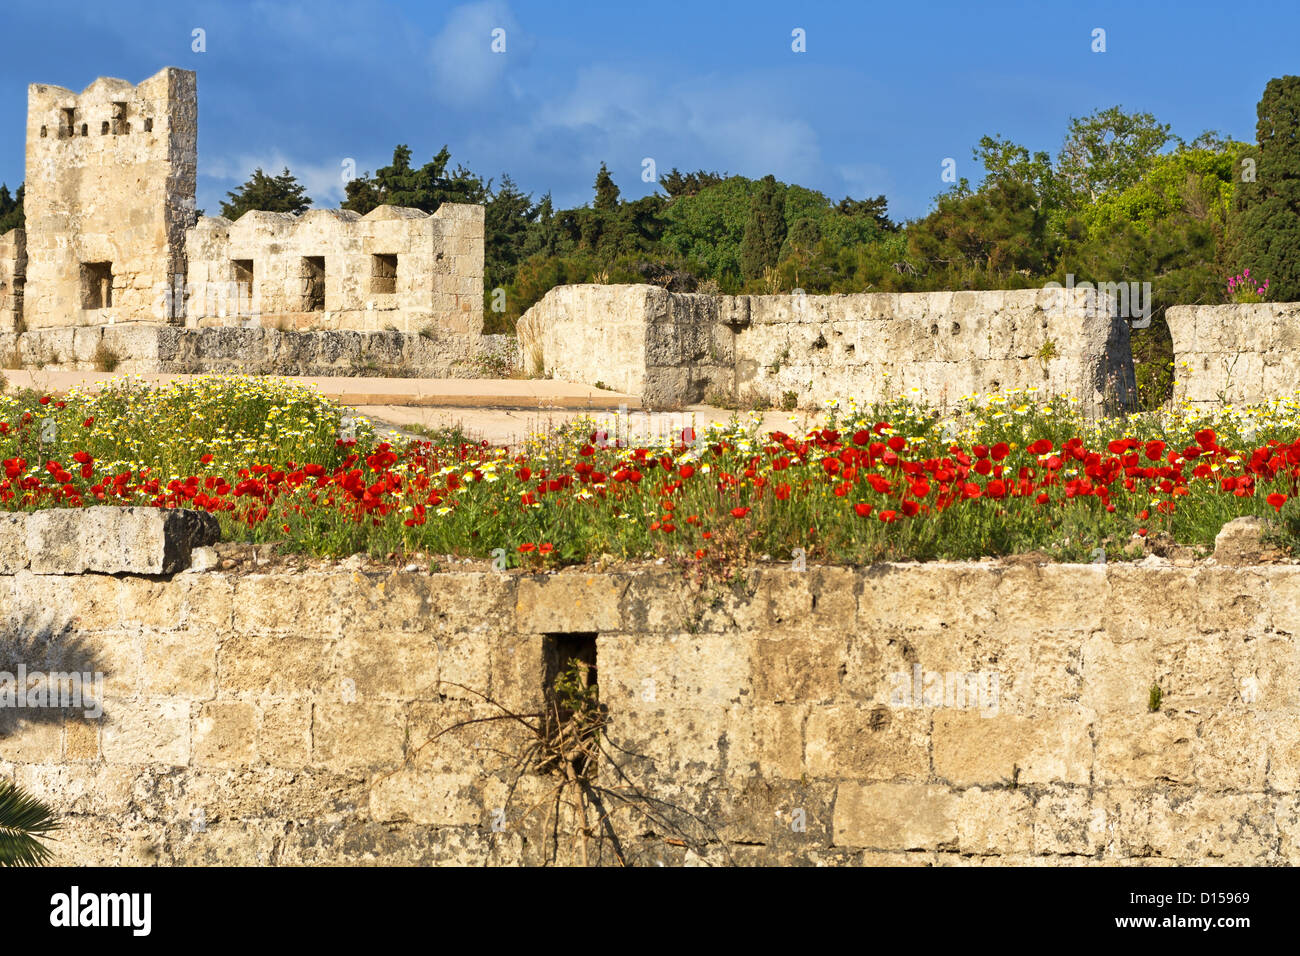 Castle of the Knights at Rhodes island in Greece - Stock Image